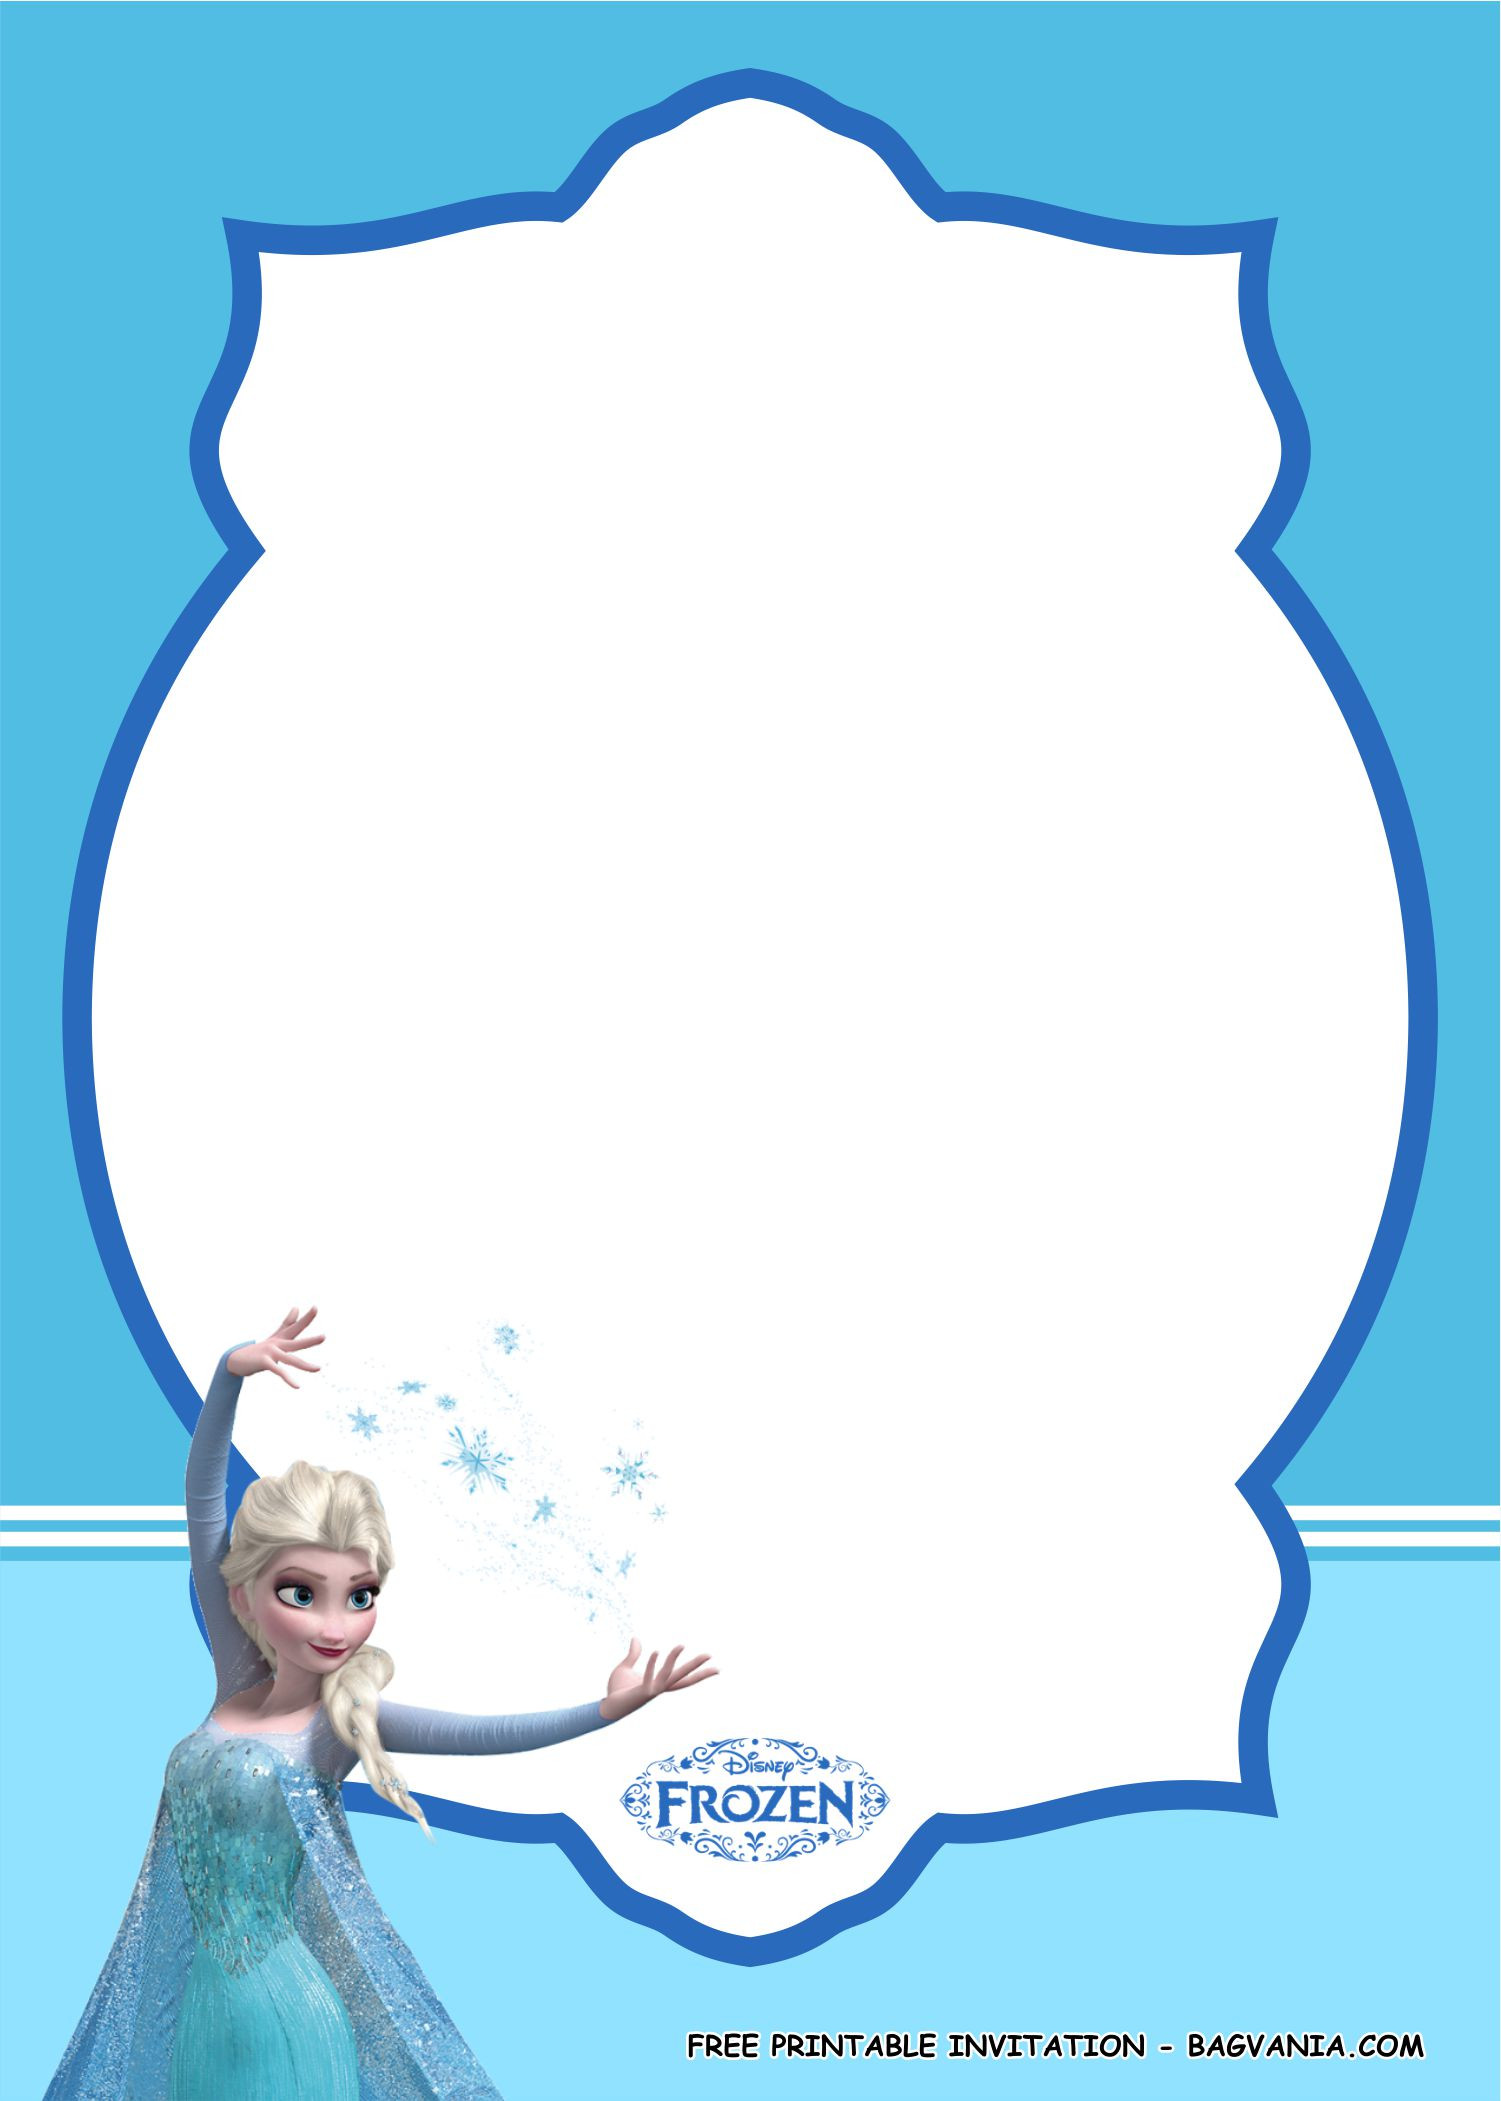 Frozen Invitations Printable Free Free Printable Amazing Frozen Birthday Party Kits – Free